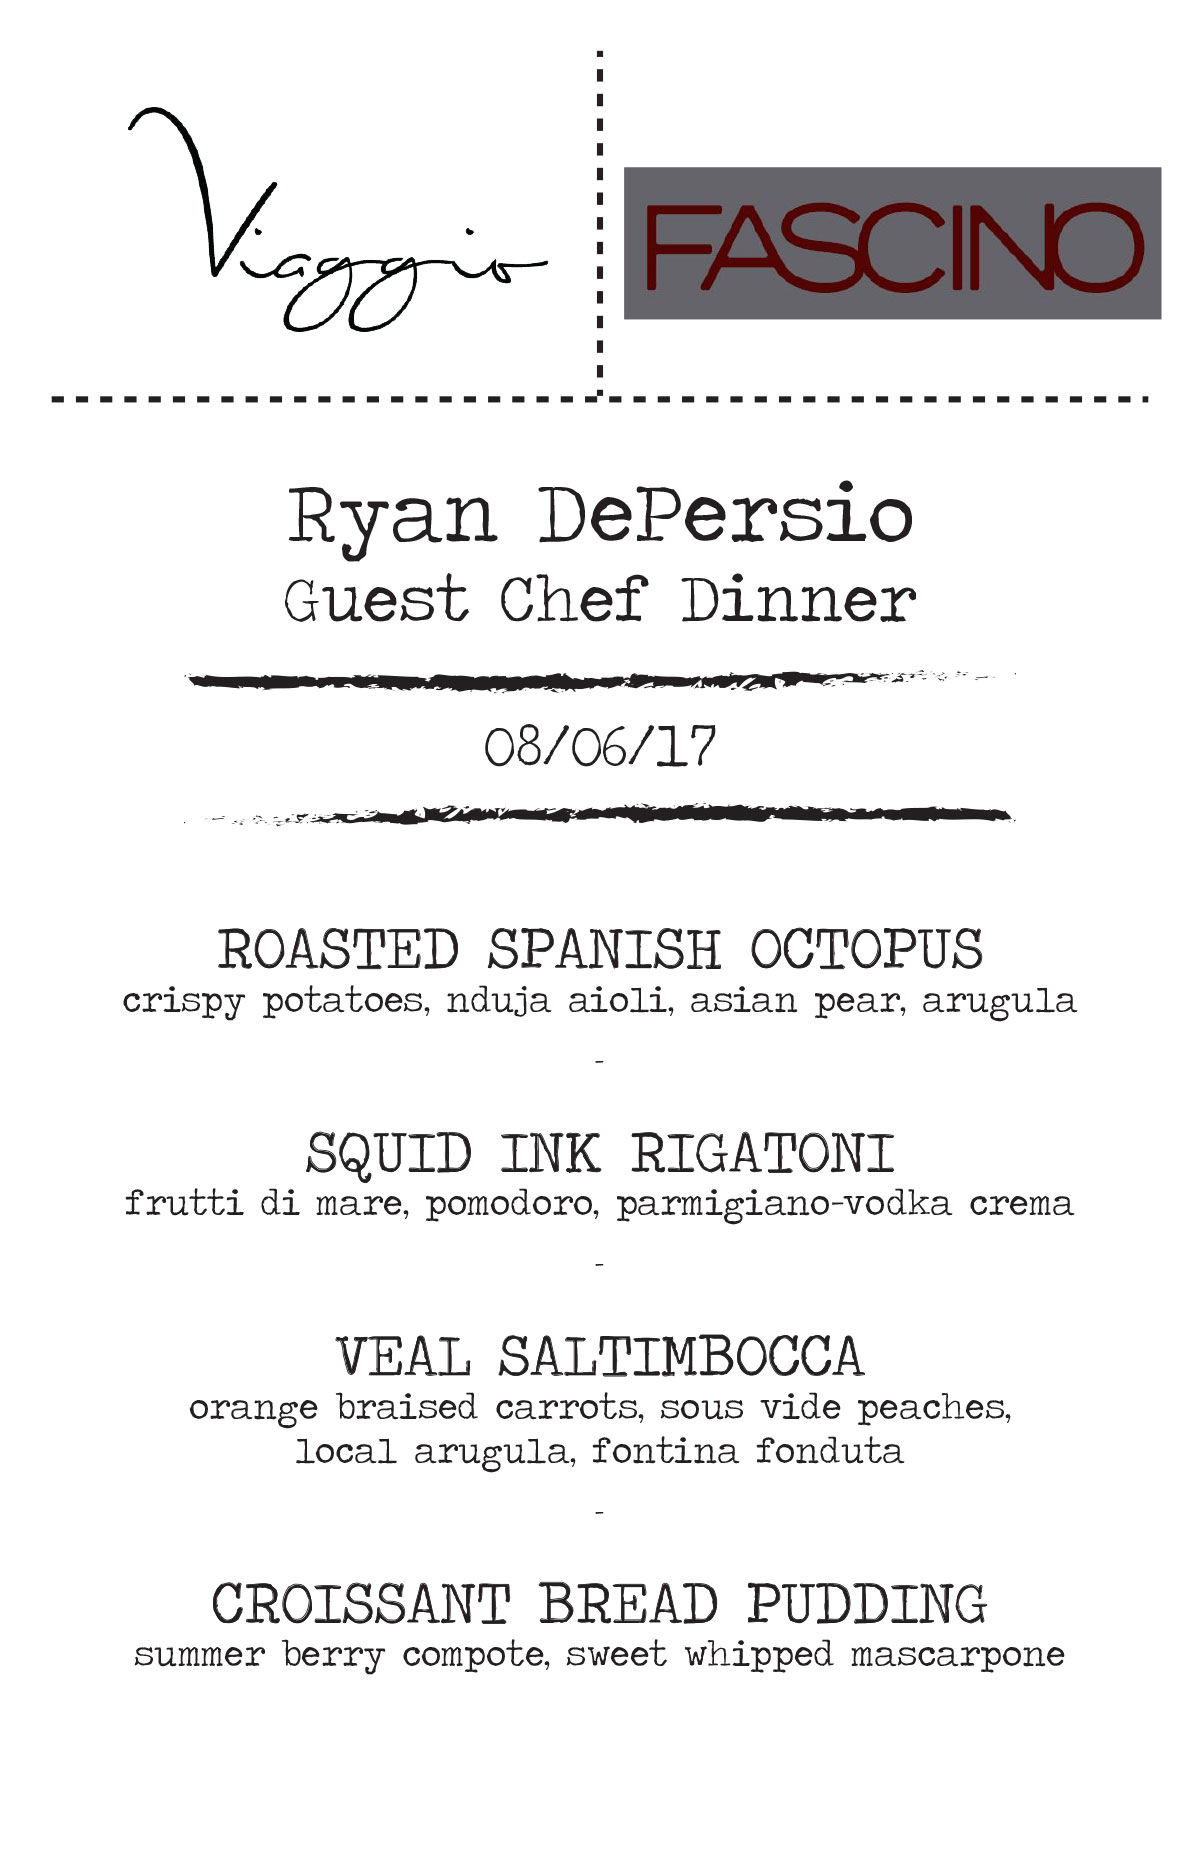 Ryan DePersio Guest Chef Dinner